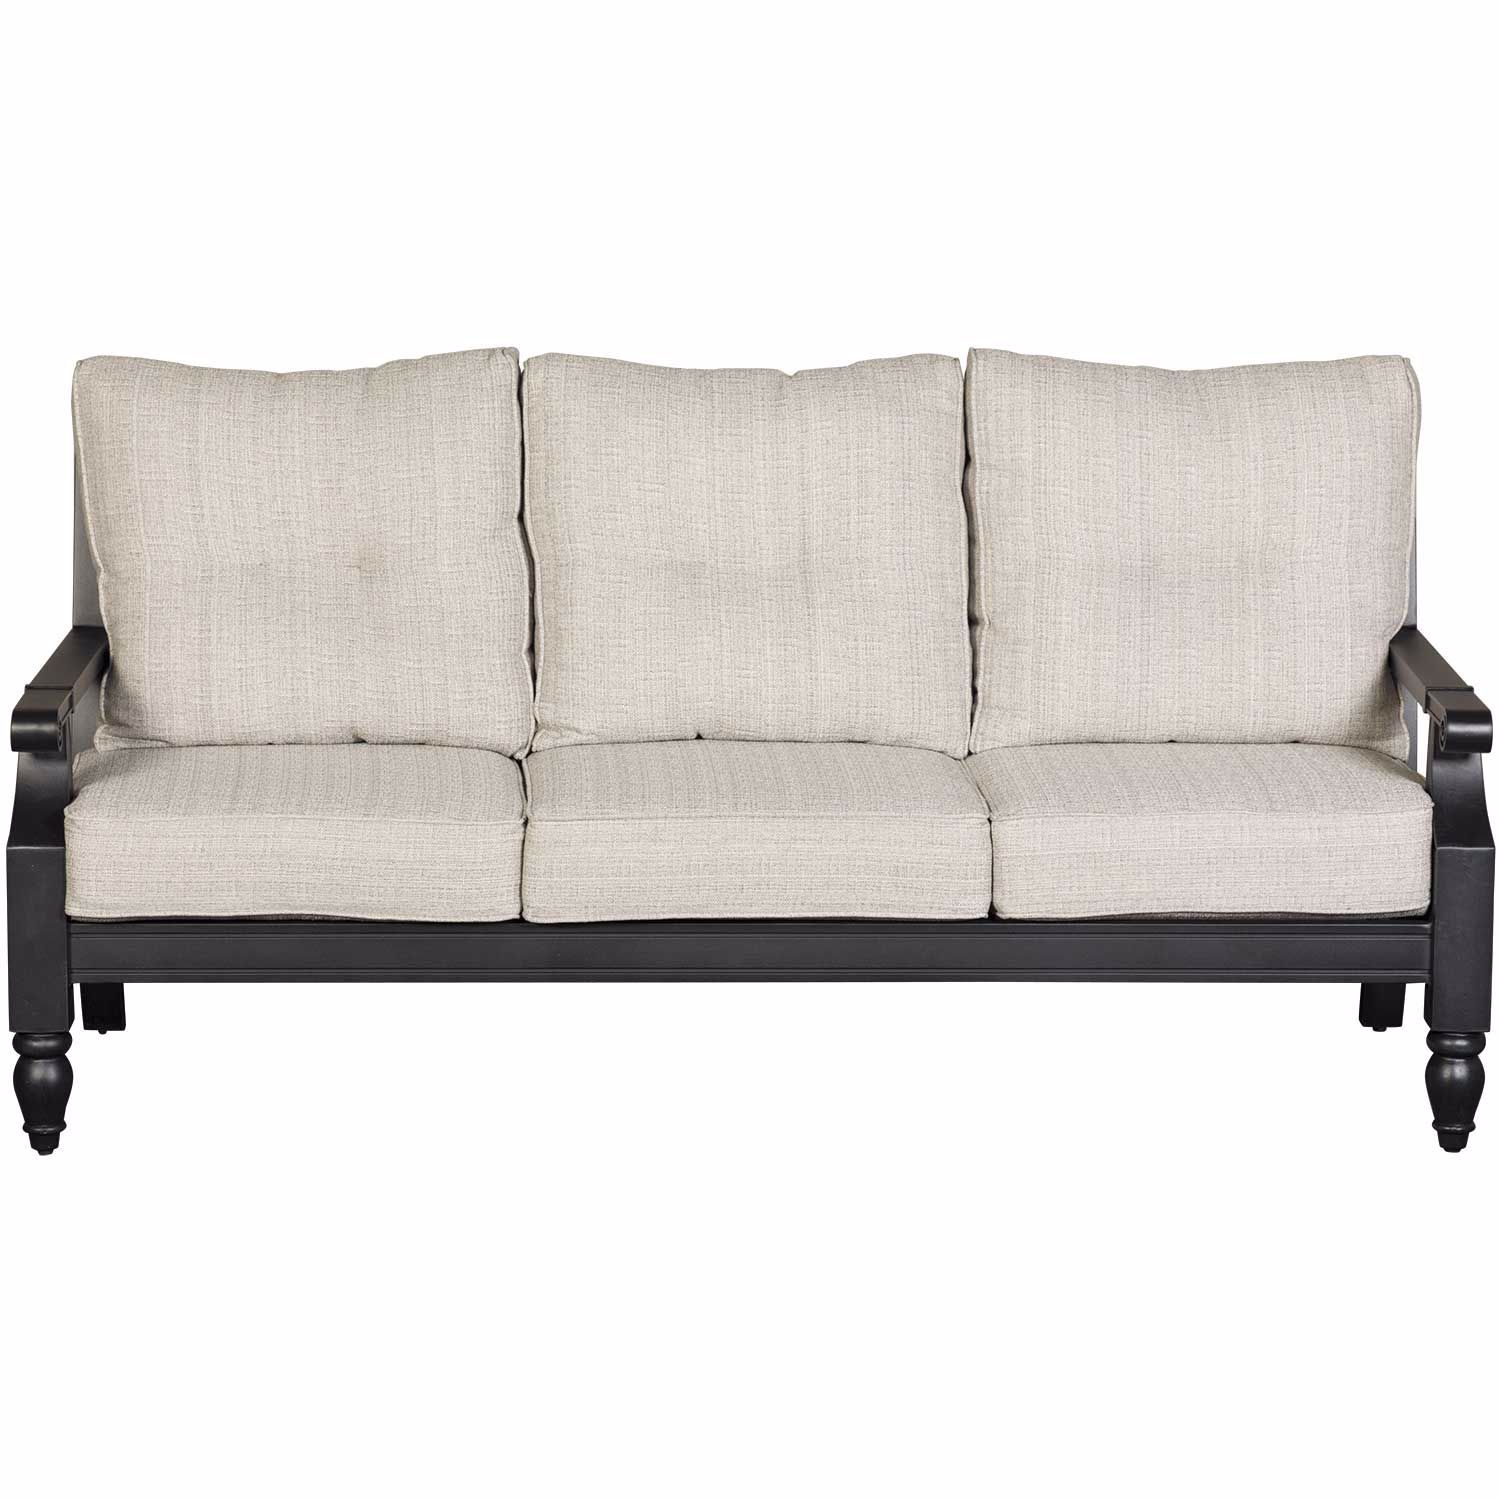 Ashville Patio Sofa with cushion